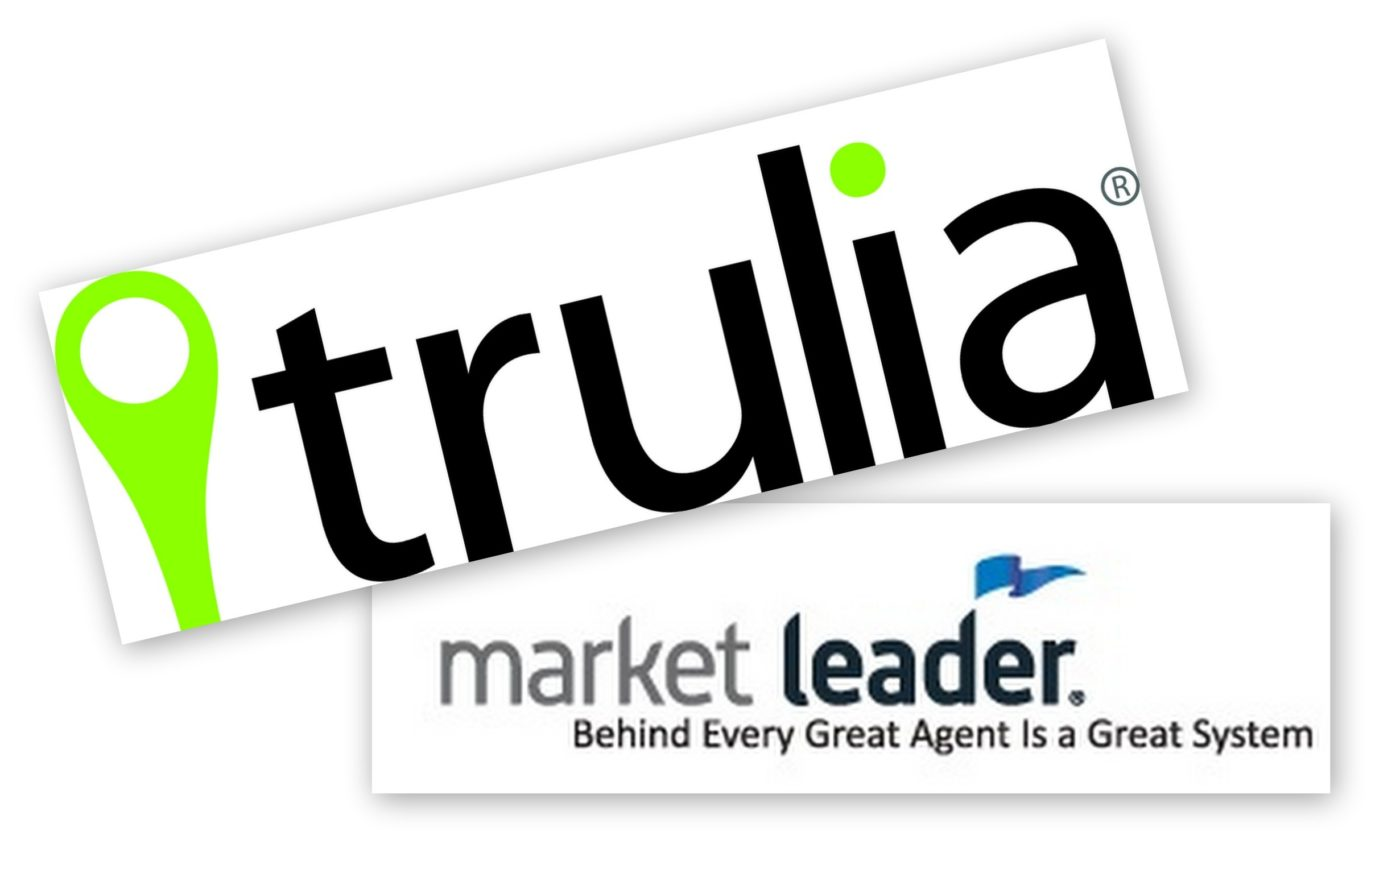 Market Leader says acquisition by Trulia still on track